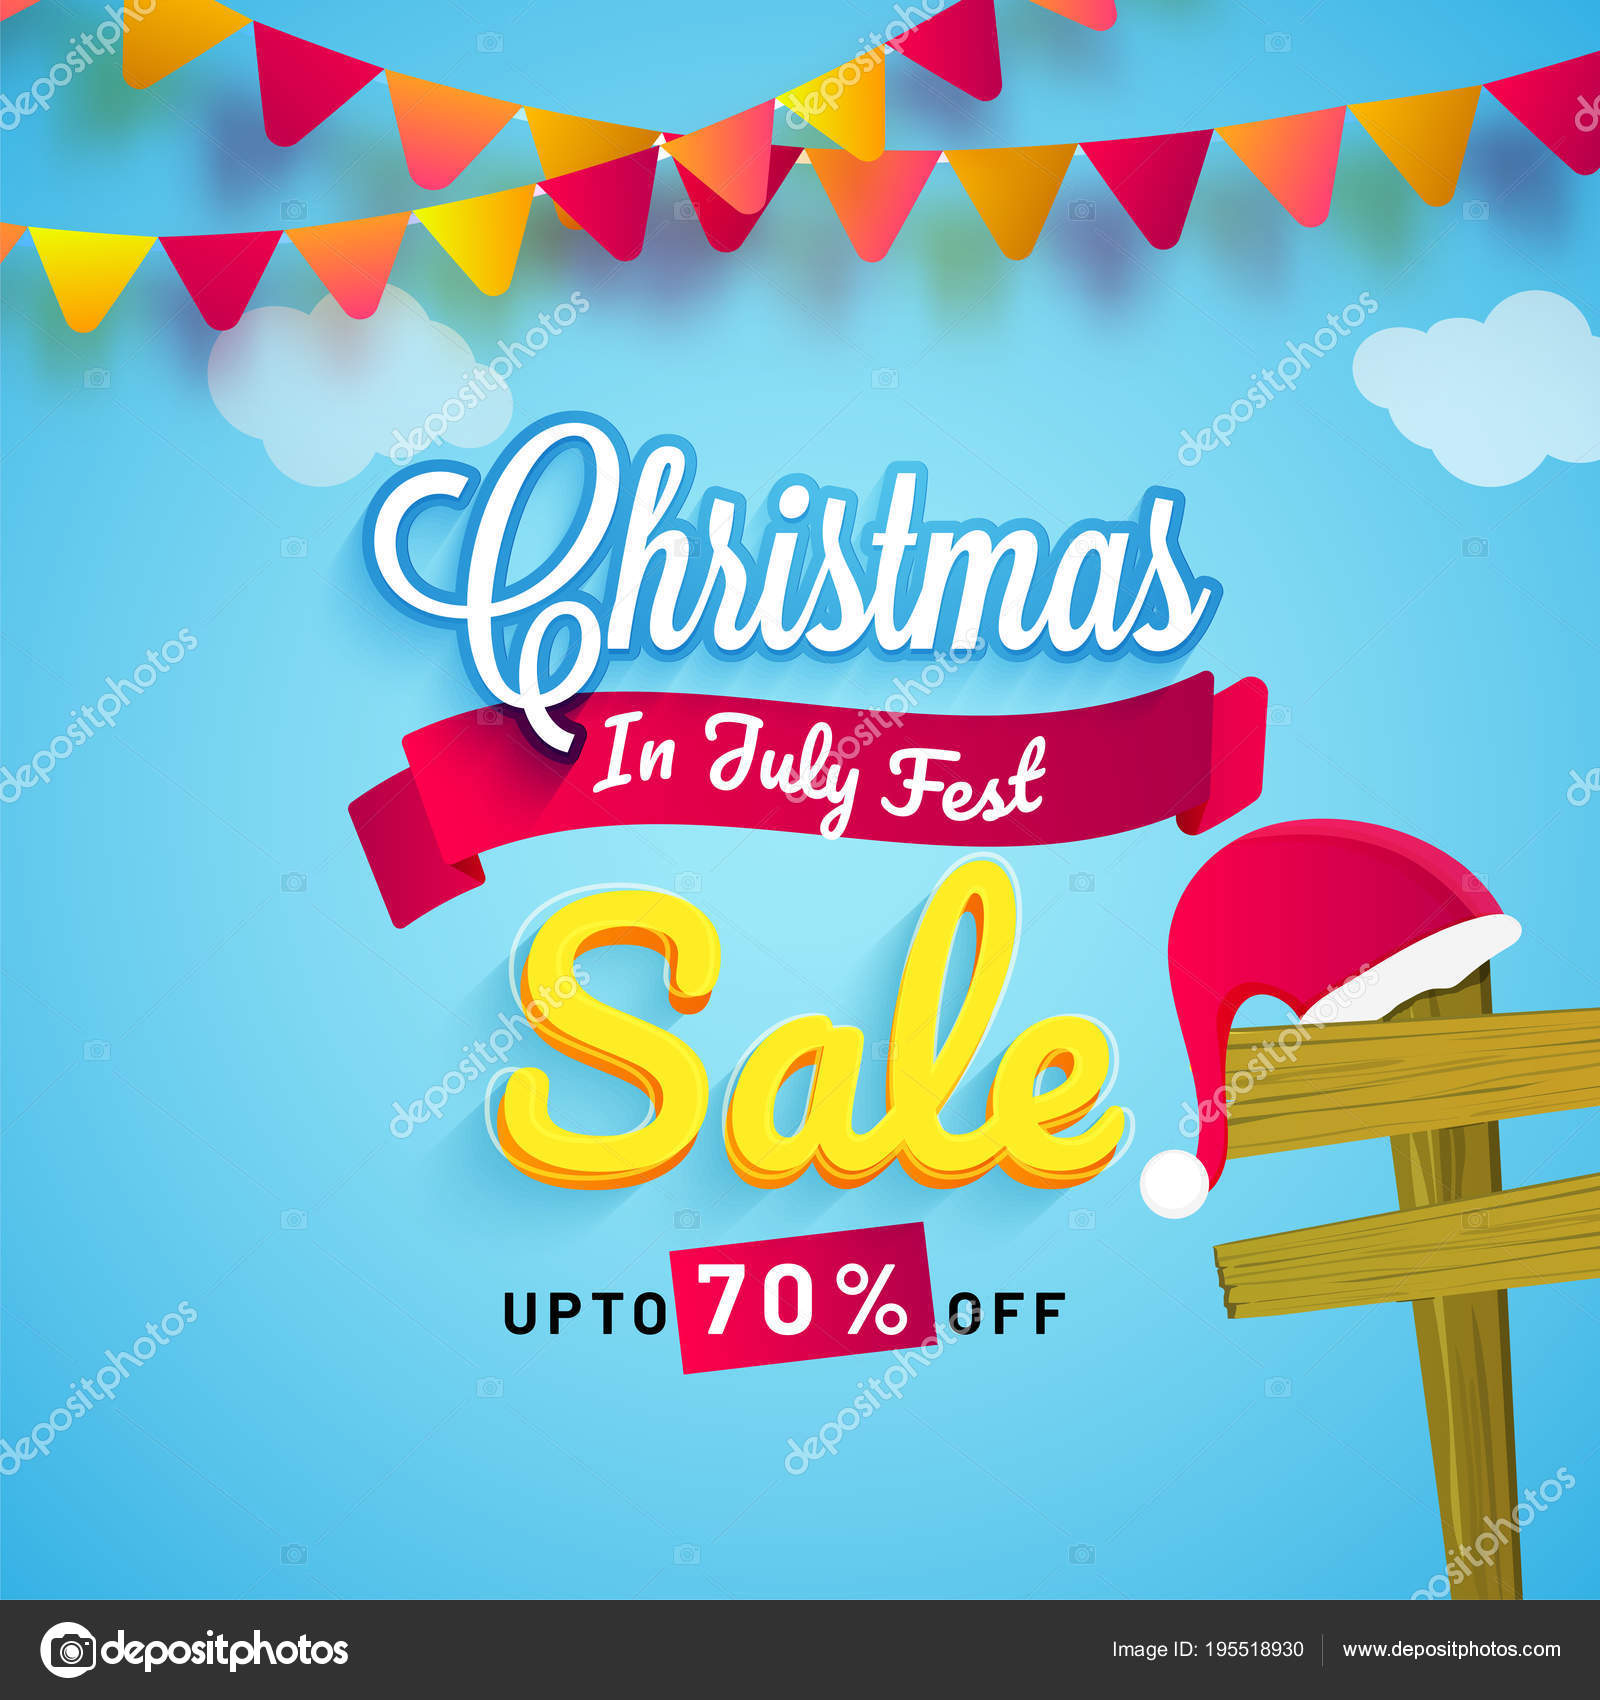 Christmas in July fest sale banner poster or flyer design with